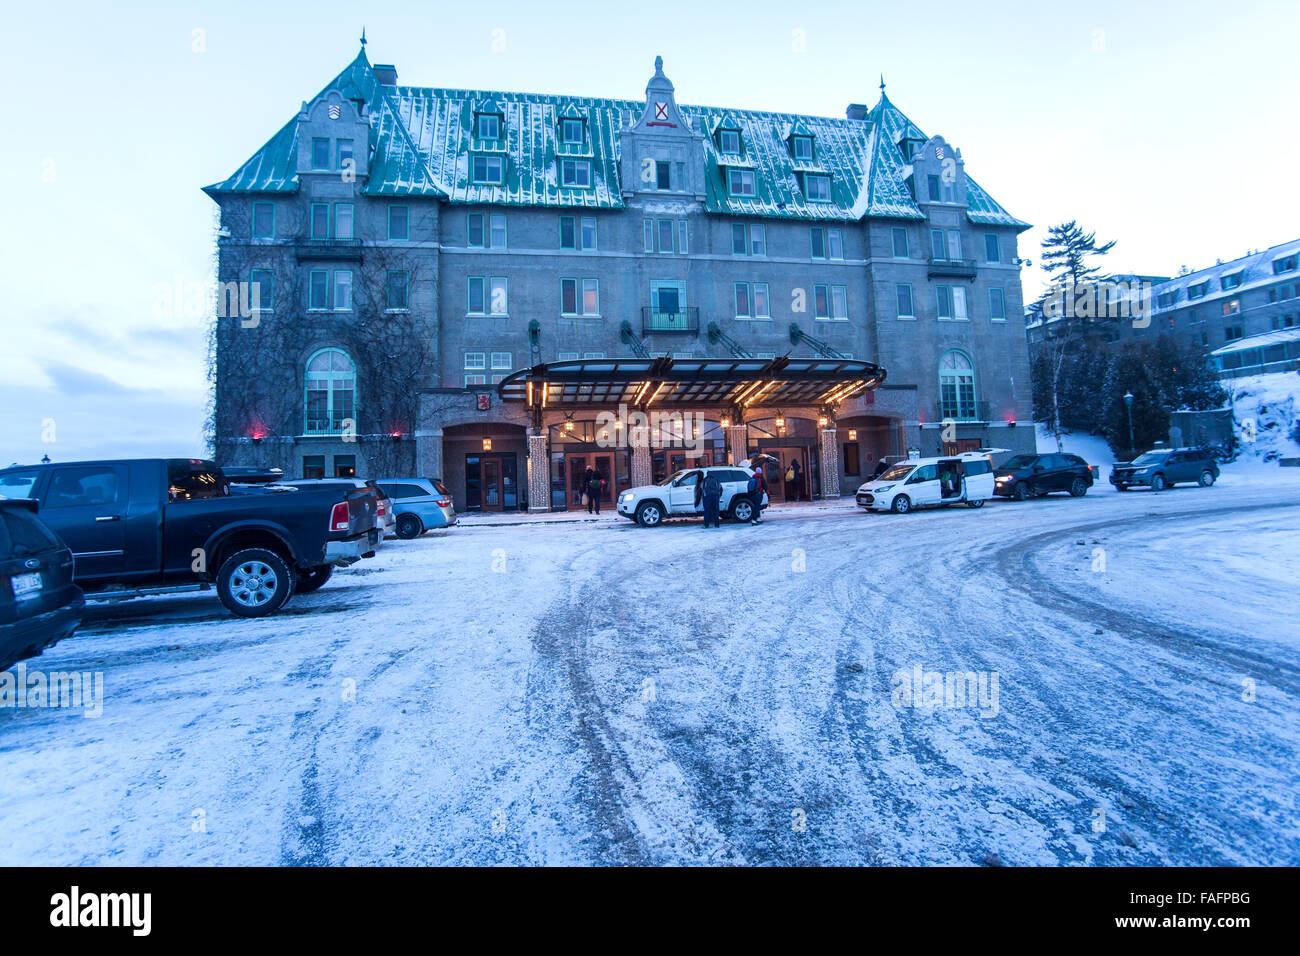 Fairmont Le Manoir Richelieu five-star luxury hotel located in La Malbaie, Charlevoix, Quebec, Canada - Stock Image